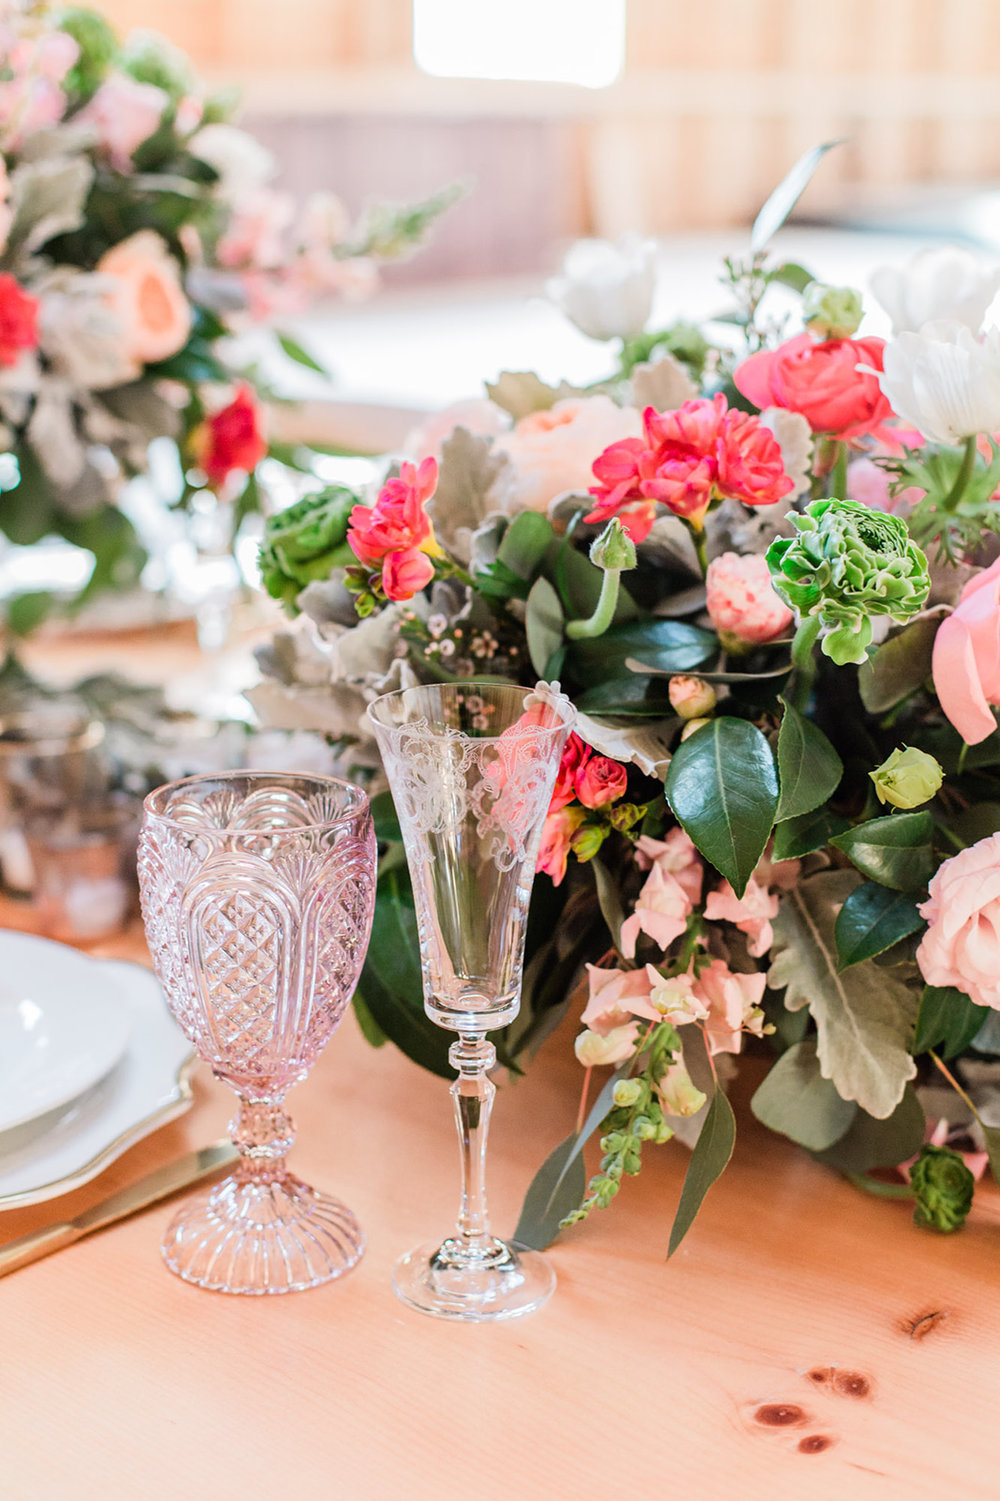 warm tone floral decorations and table setting pink colored glass indoors